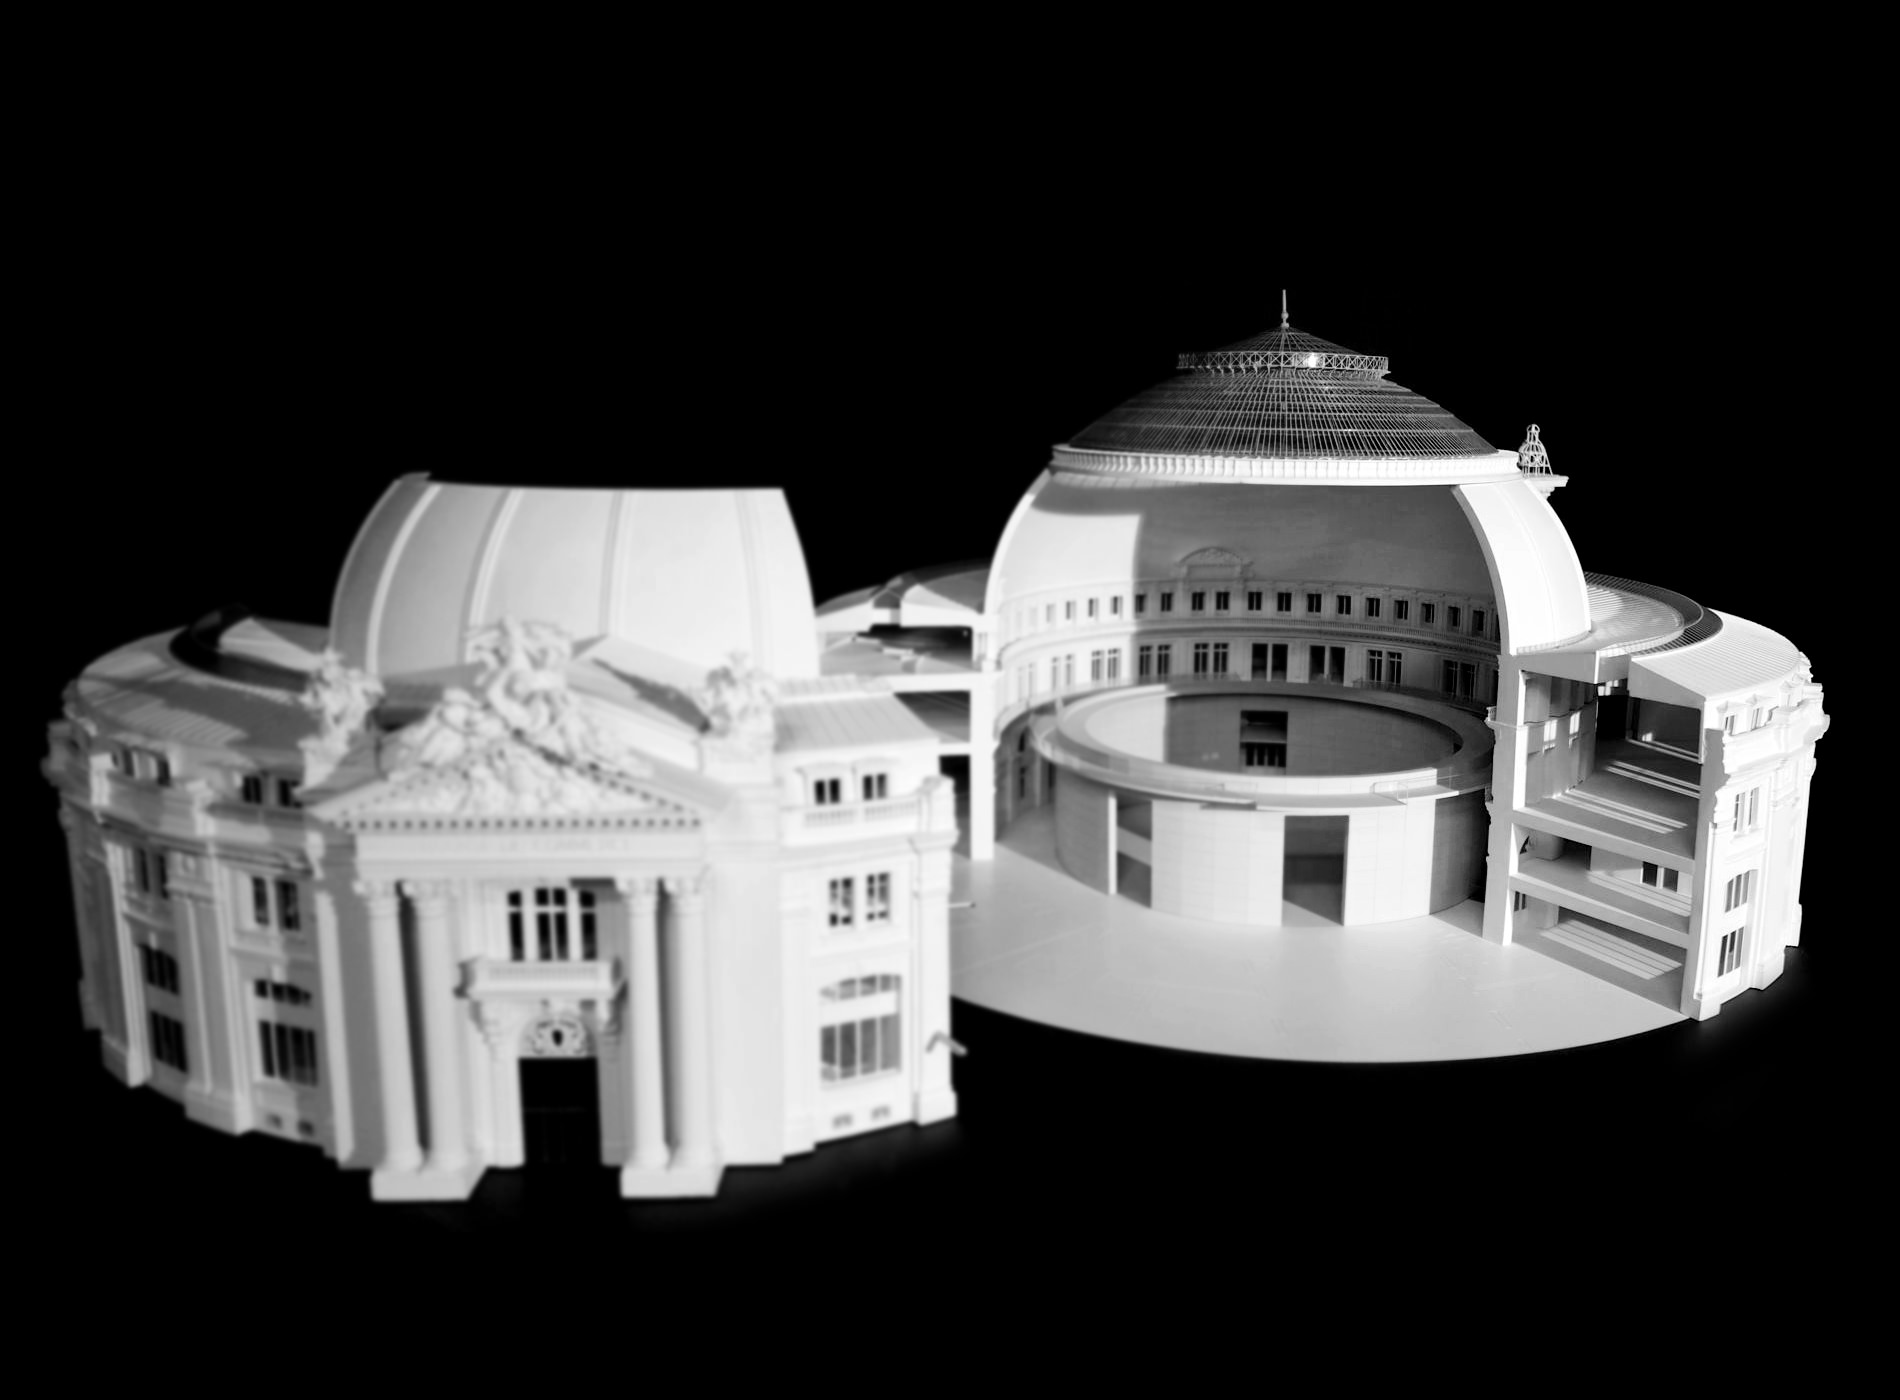 Bourse Commerce Paris Collection Pinault Maquette Volume Tadao Ando